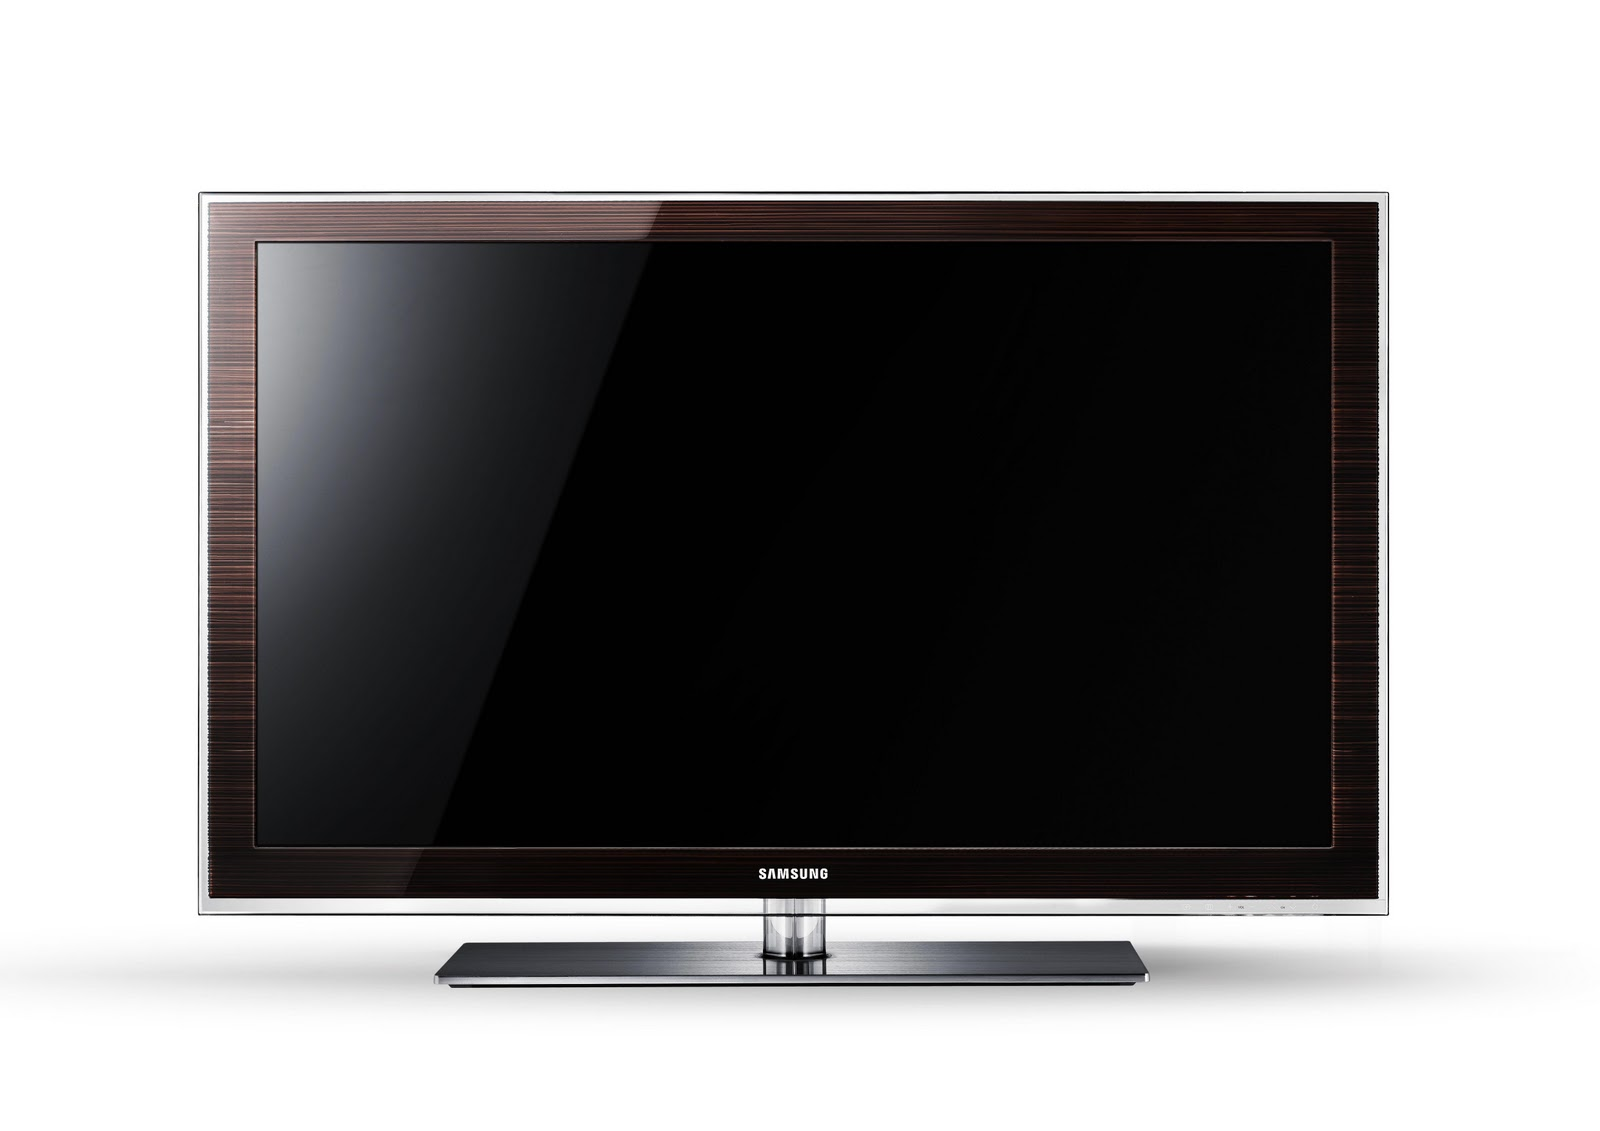 samsung 3d led tv hd wallpapers 2012 new technology information 2012. Black Bedroom Furniture Sets. Home Design Ideas